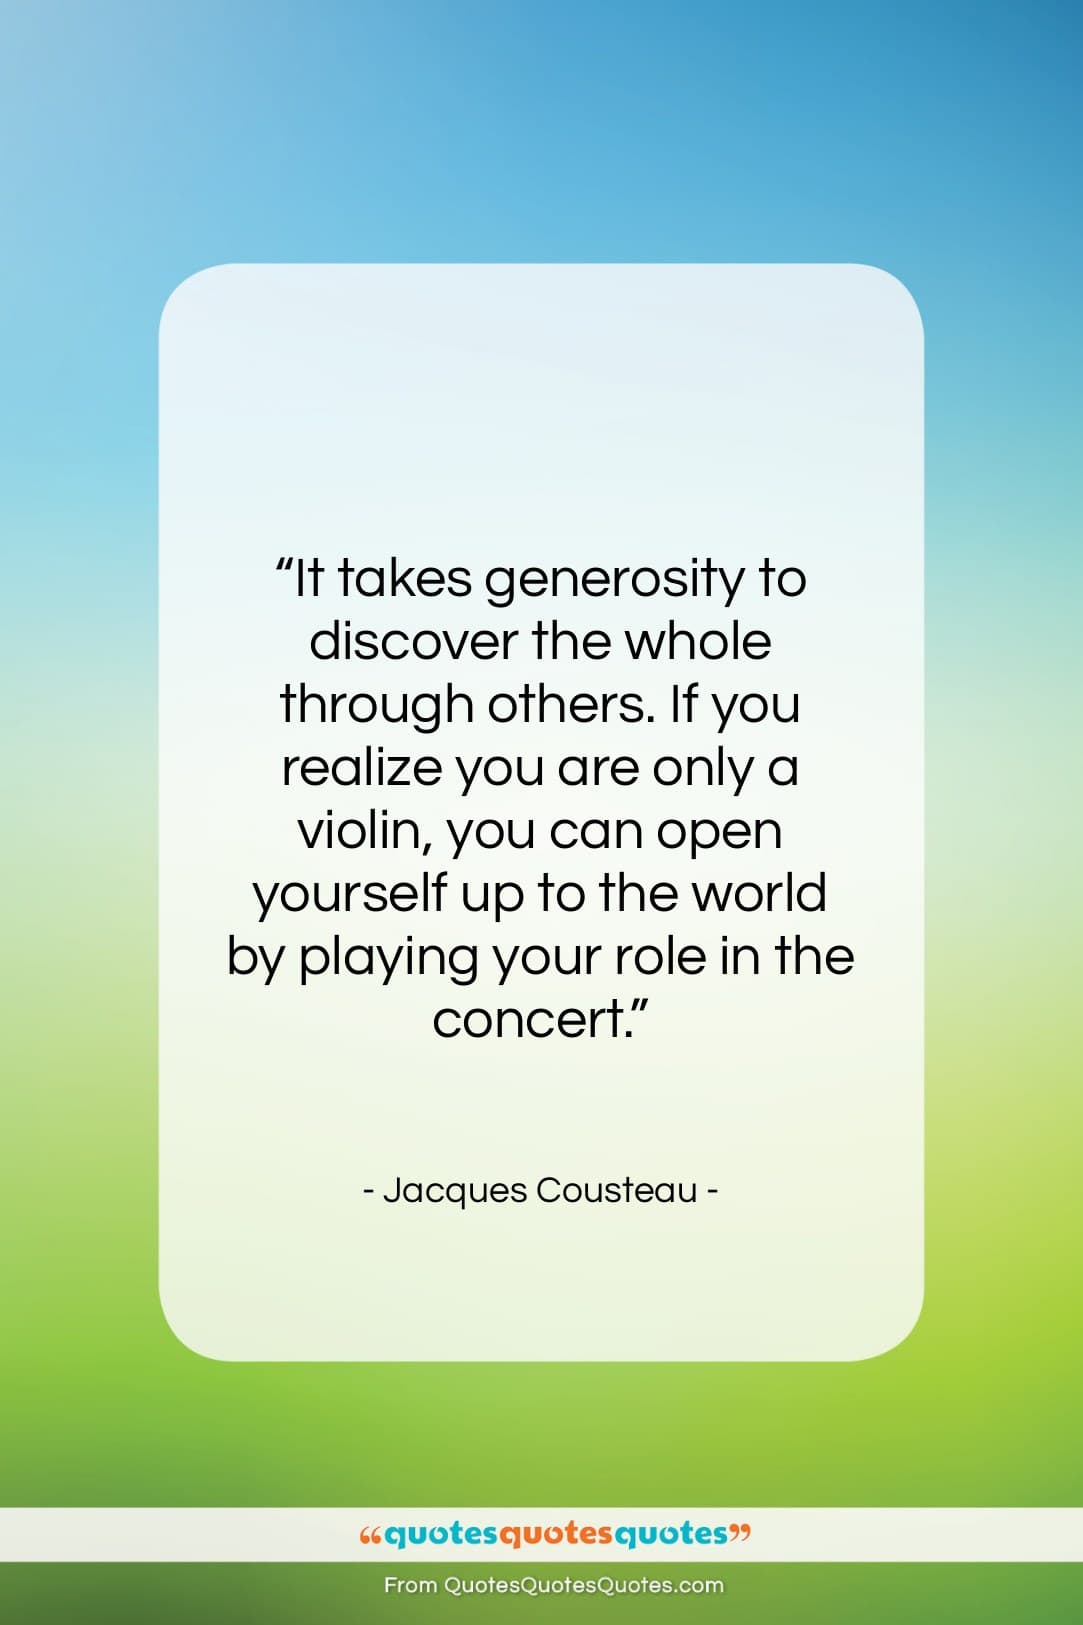 """Jacques Cousteau quote: """"It takes generosity to discover the whole…""""- at QuotesQuotesQuotes.com"""